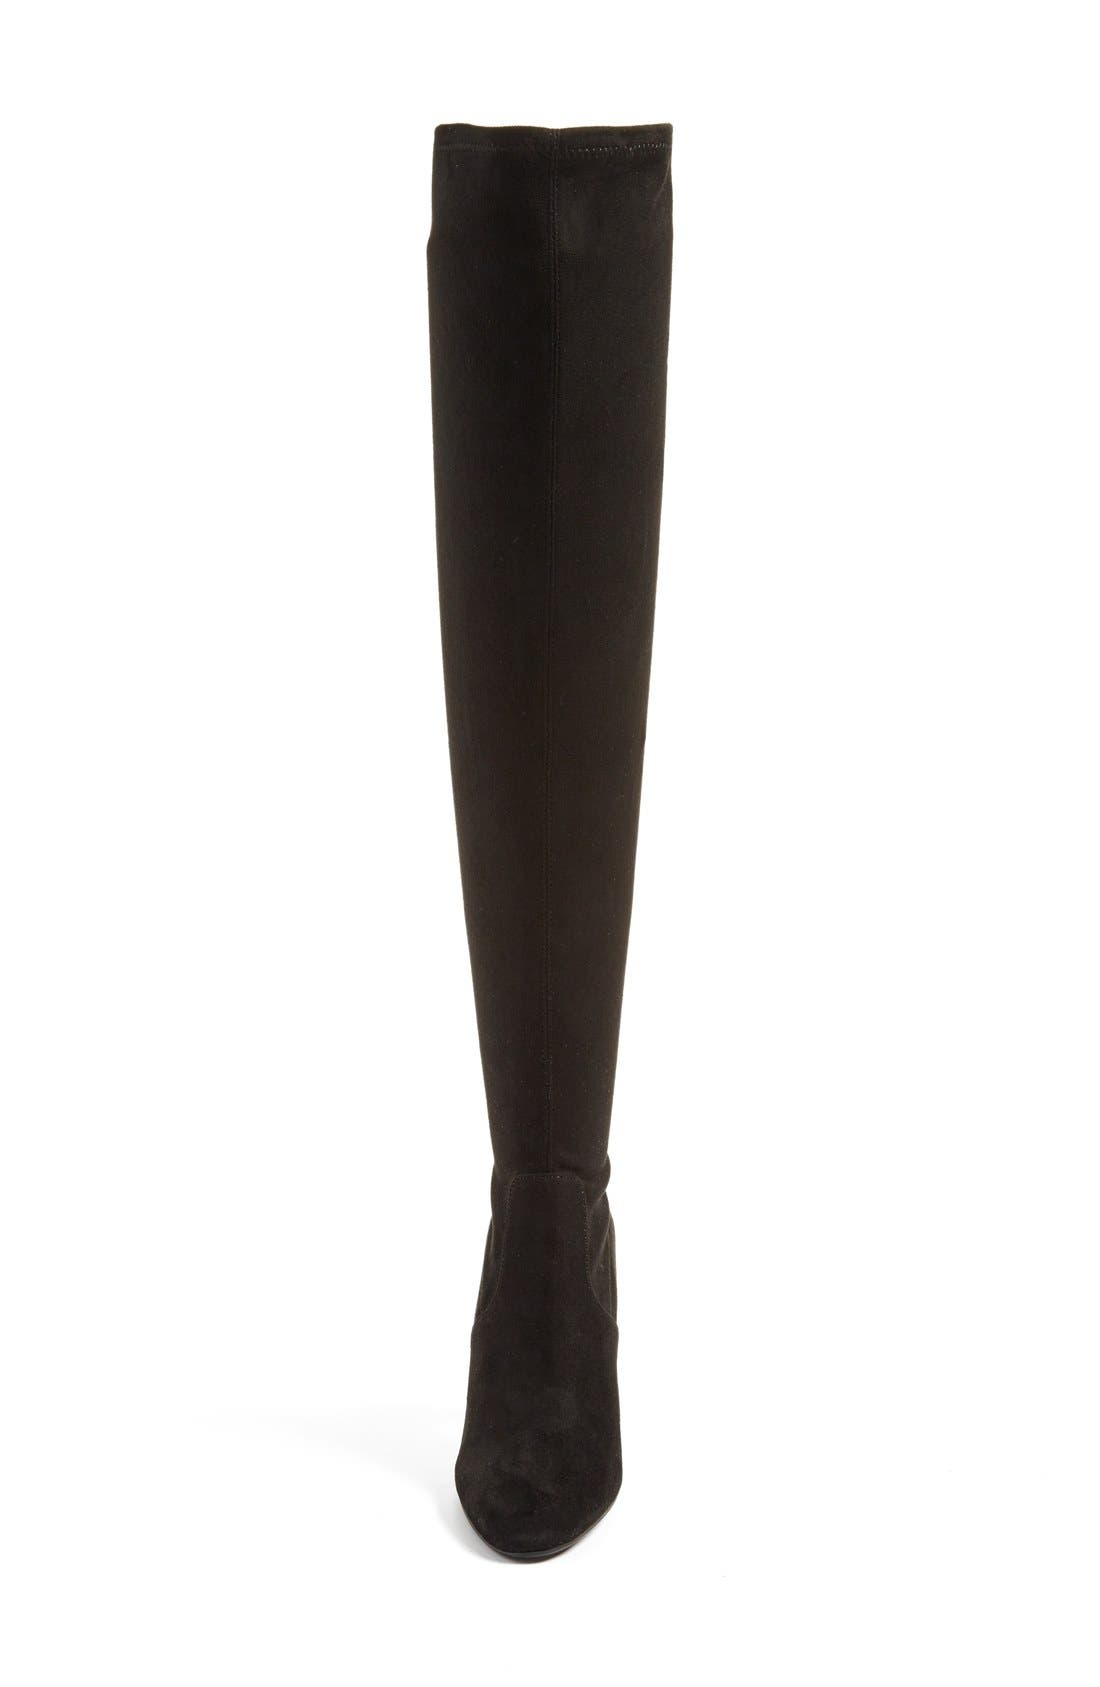 Alternate Image 3  - Steve Madden 'Emotions' Stretch Over the Knee Boot (Women)